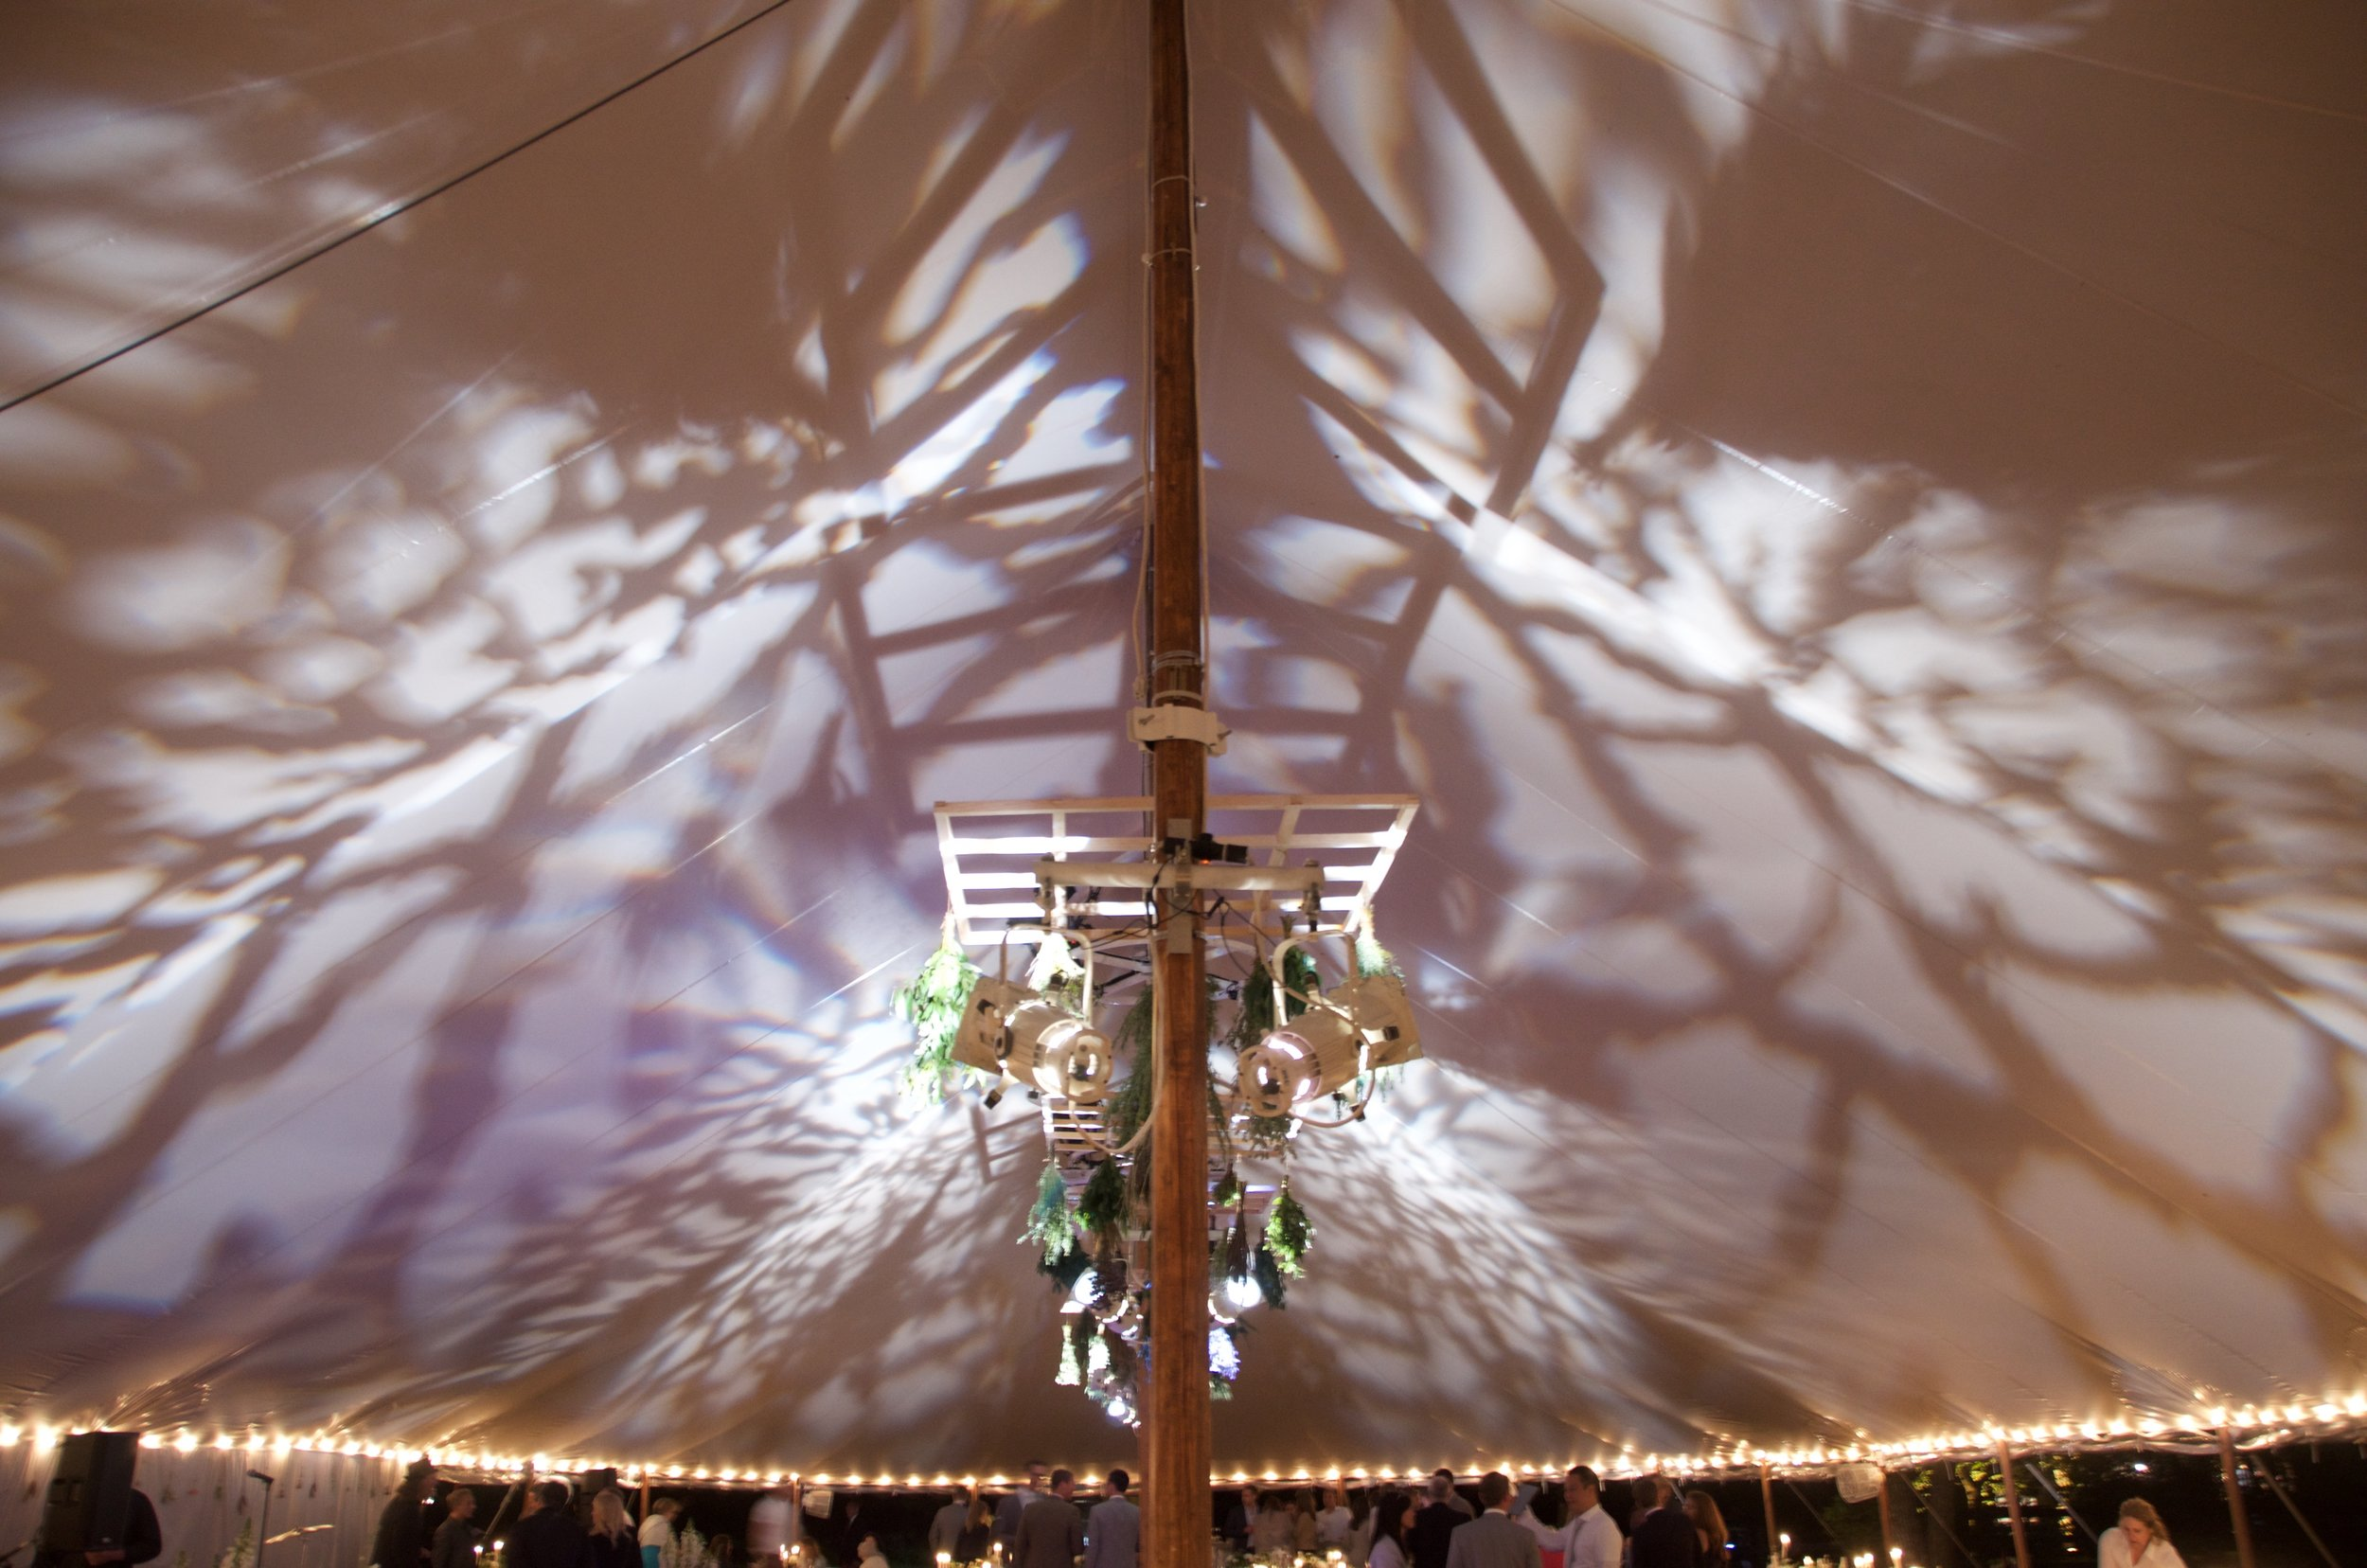 Patterned gobos on a tent ceiling